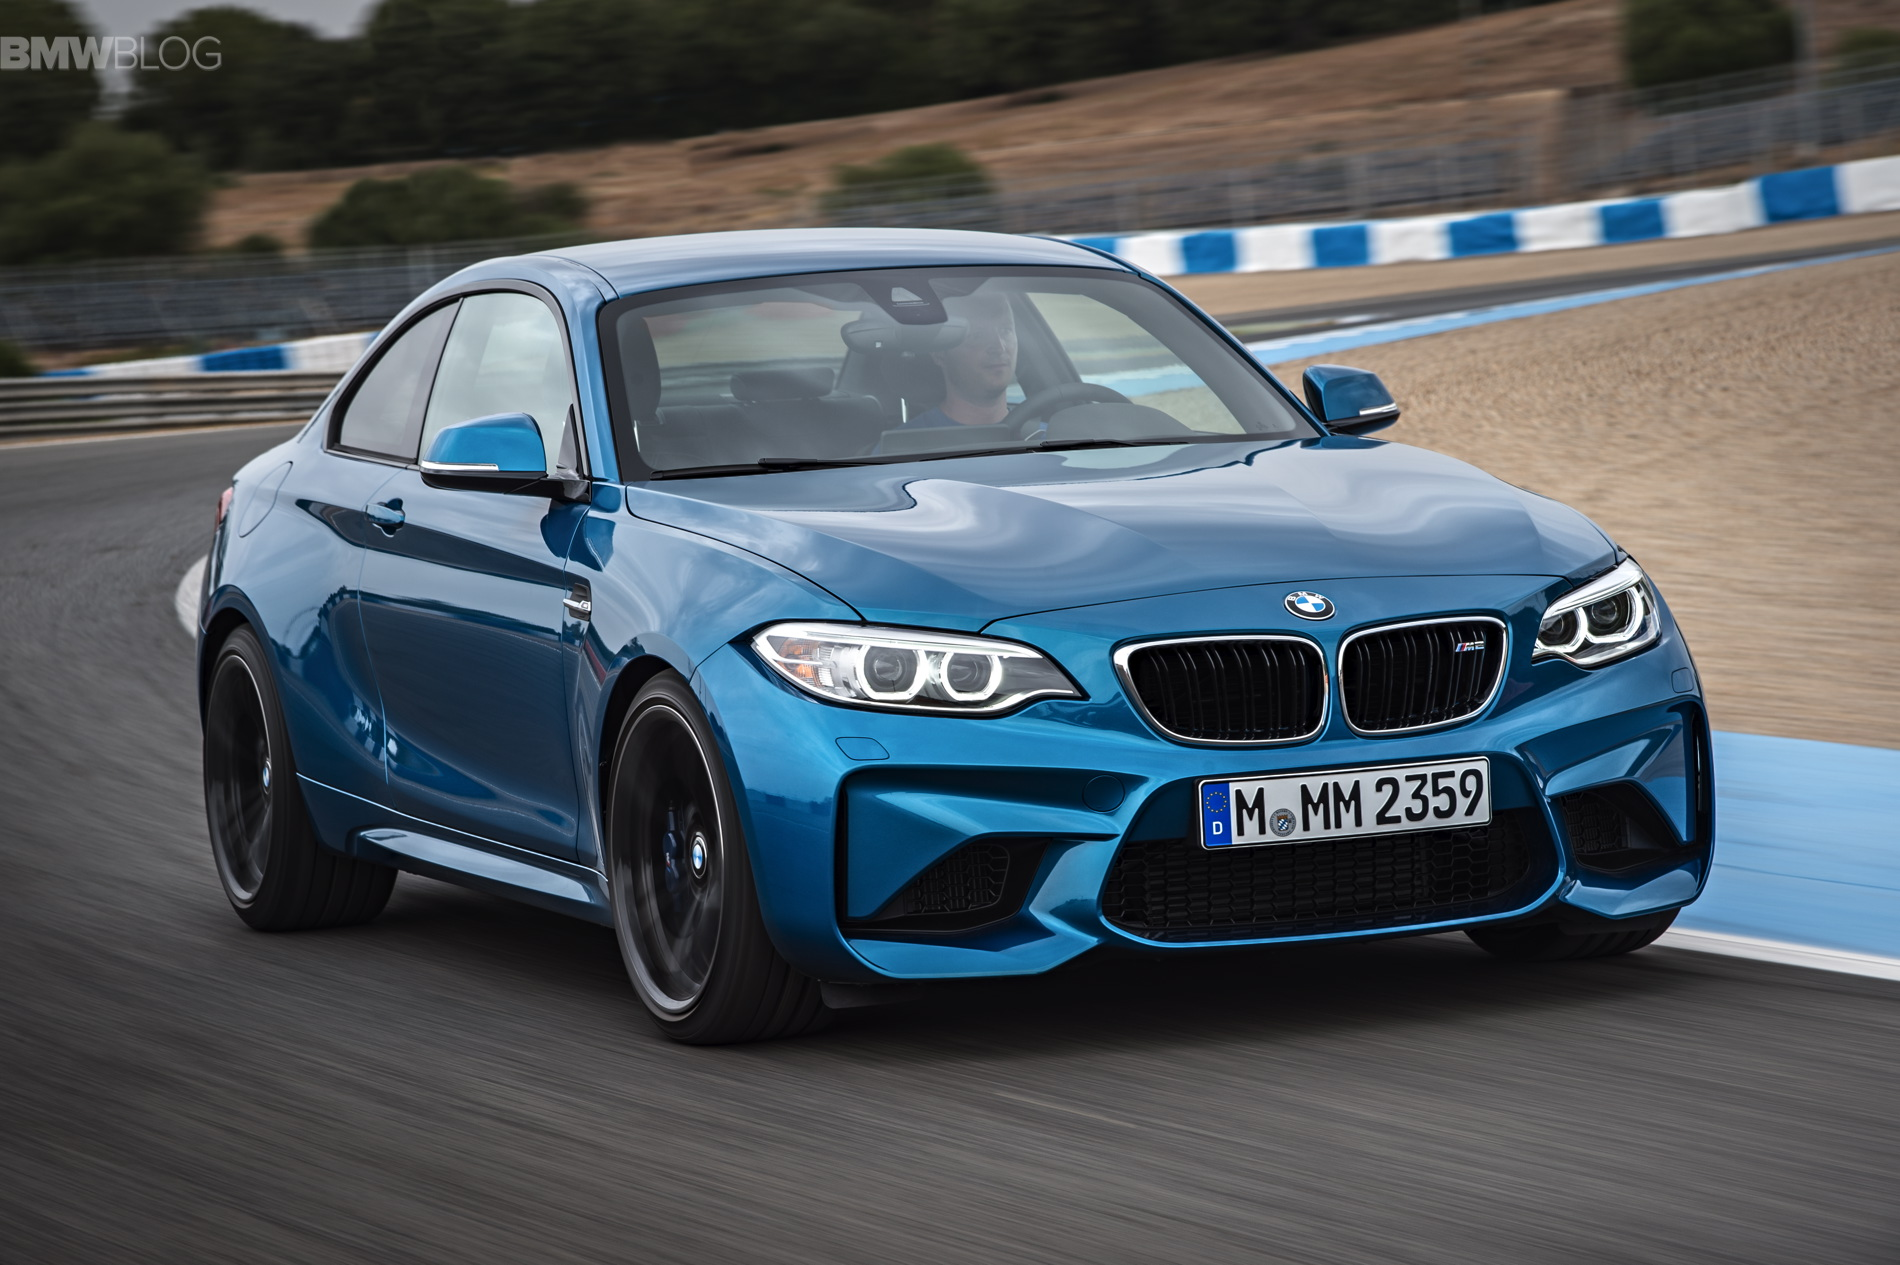 Monticello Motor Club >> BMW M2 Nurburgring Time: 7:58 minutes, 7 seconds faster ...